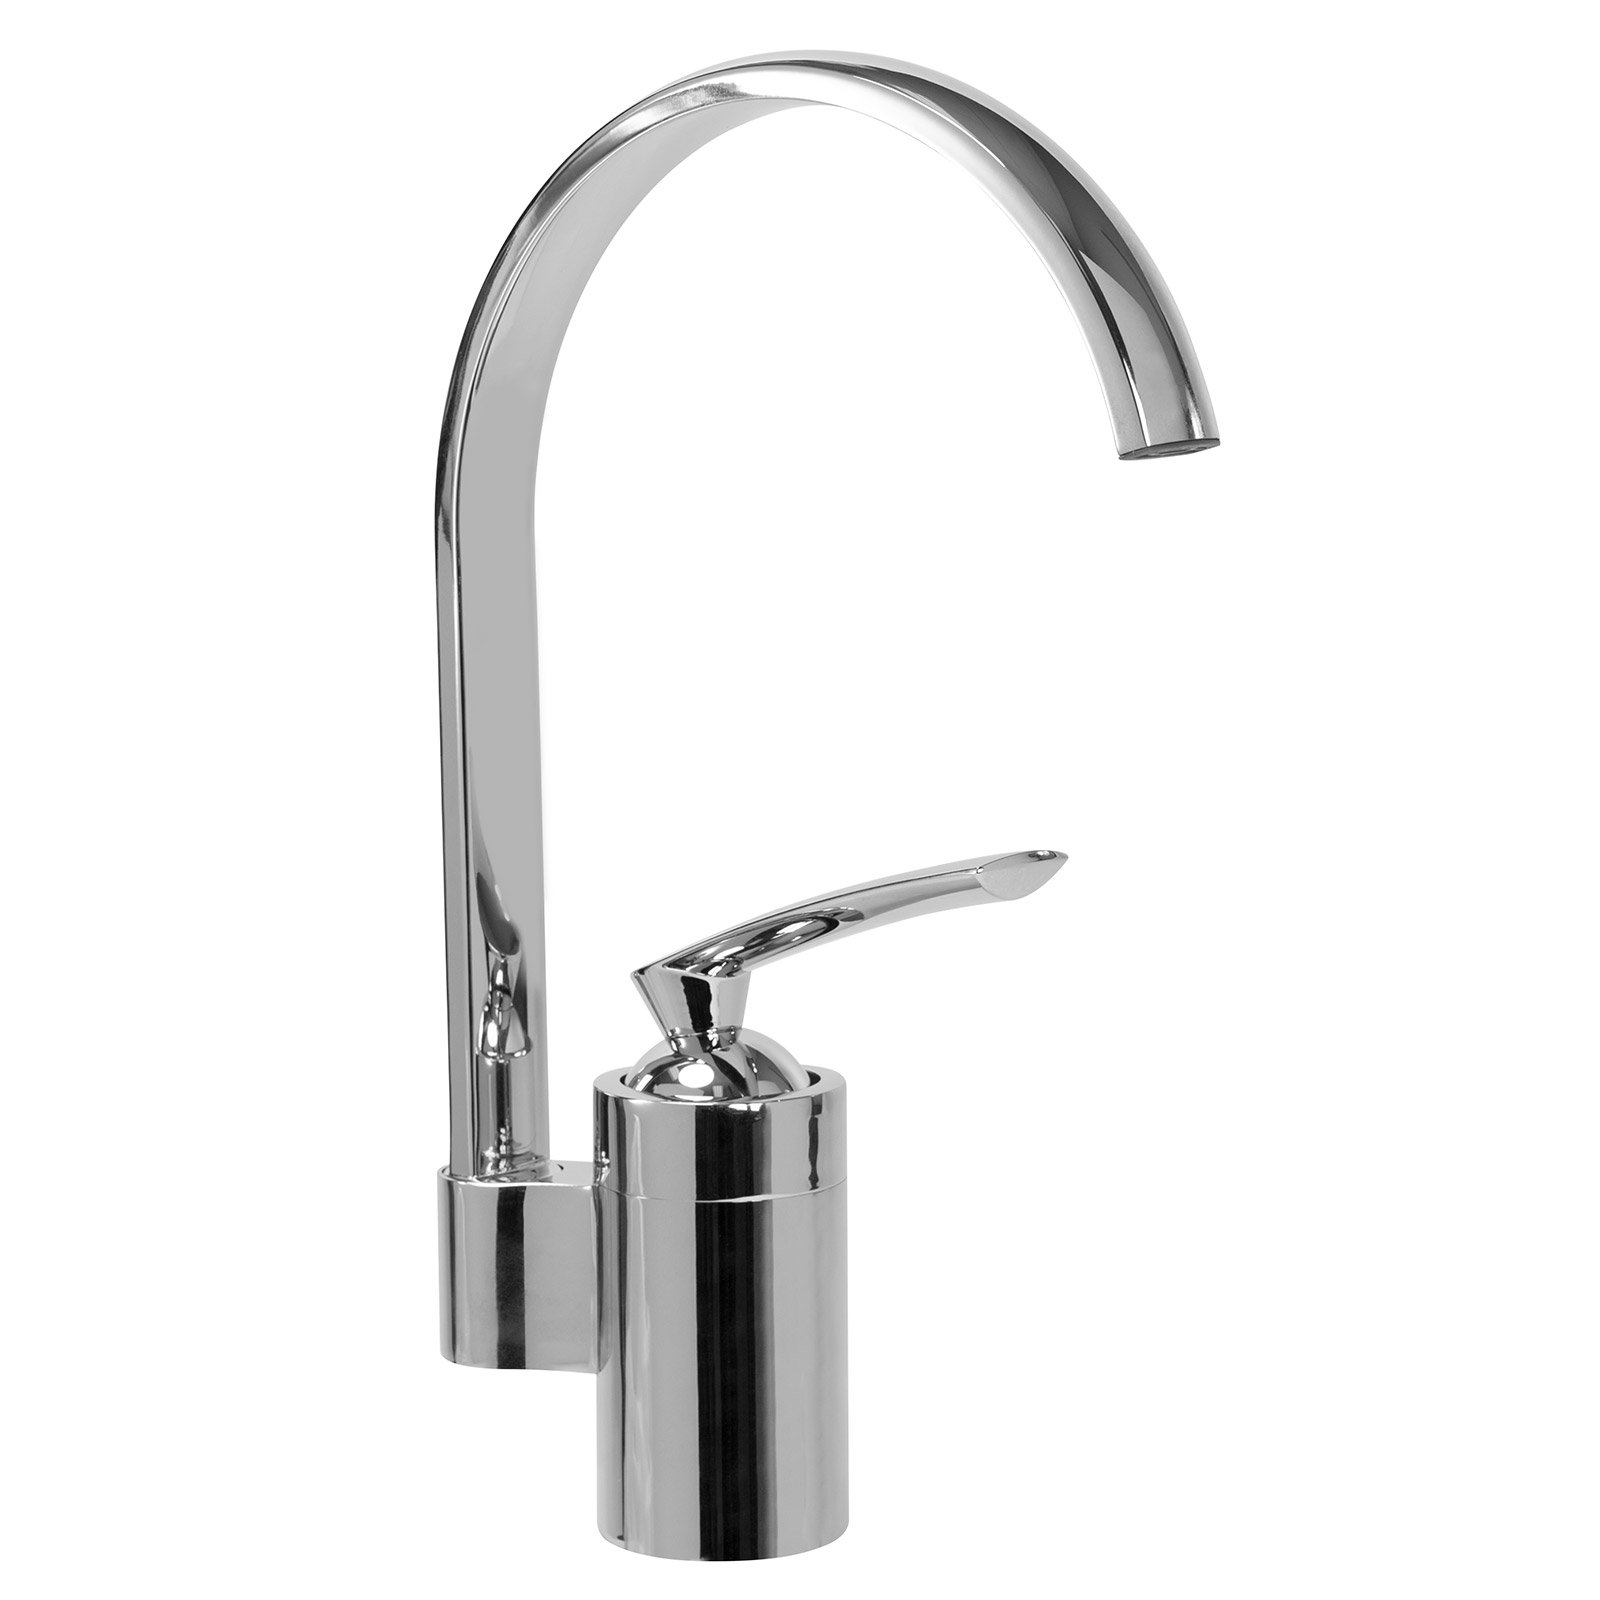 FREUER Rotatorio Collection: Modern Kitchen/Wet Bar Sink Faucet, Chrome